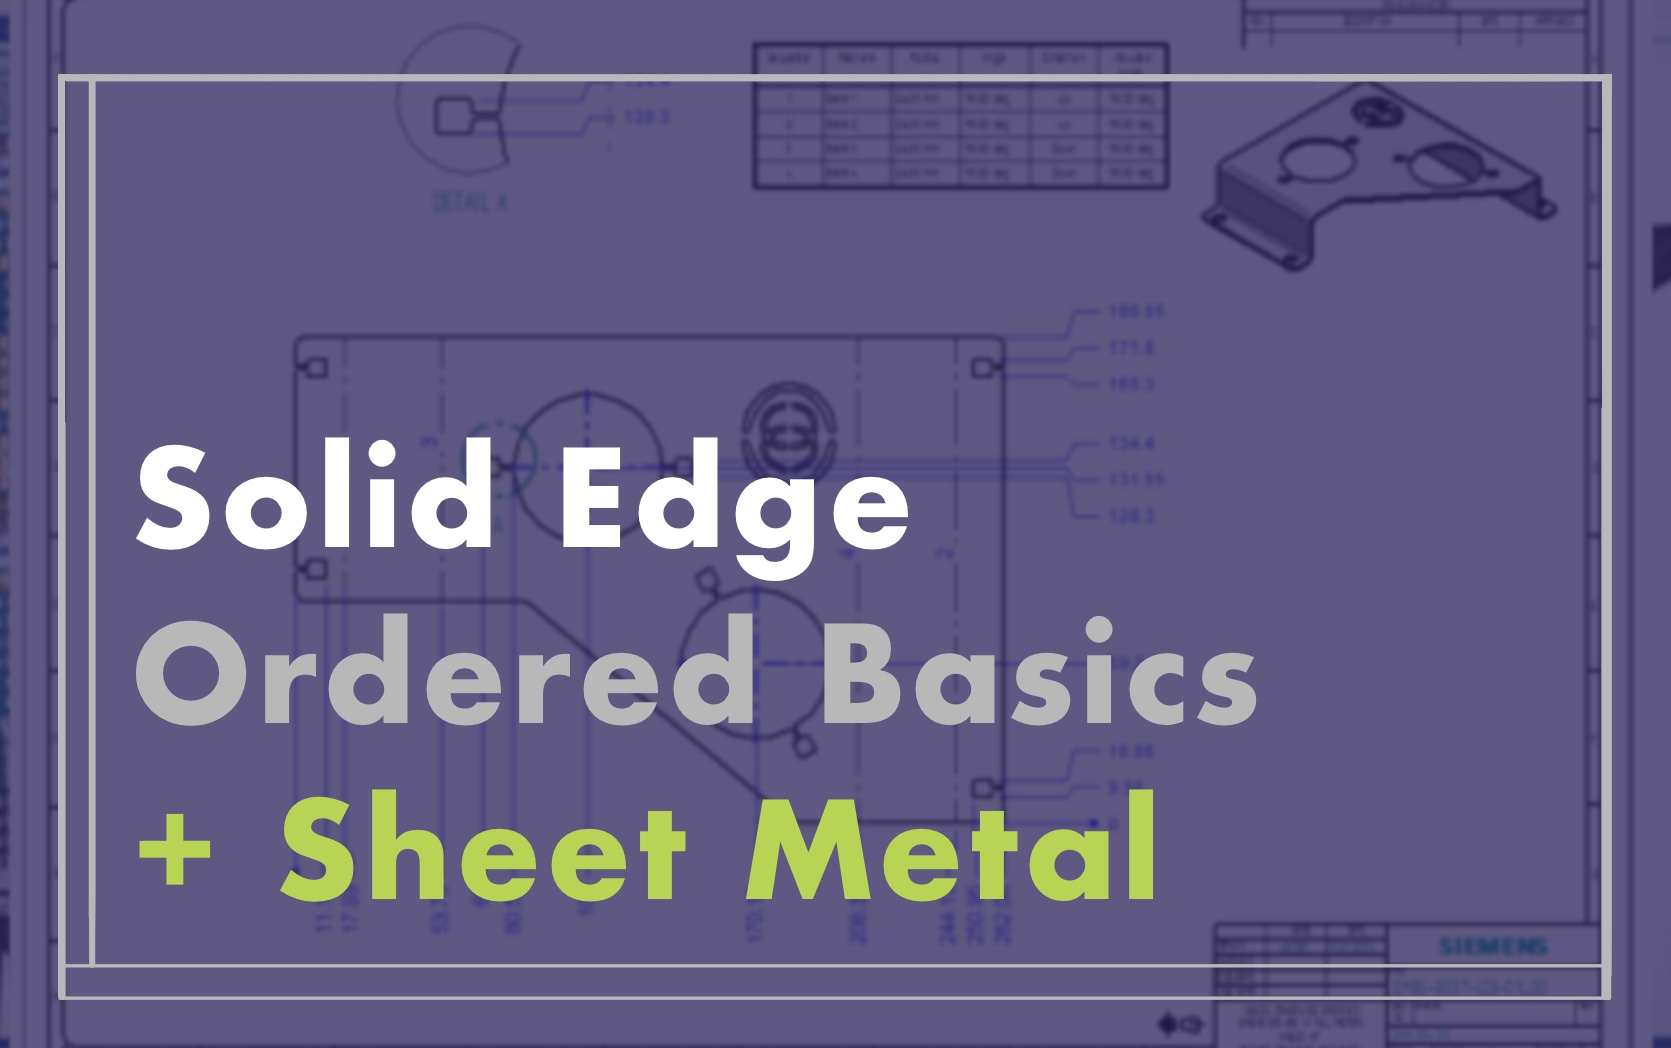 Solid Edge ordered basics with sheet metal course image